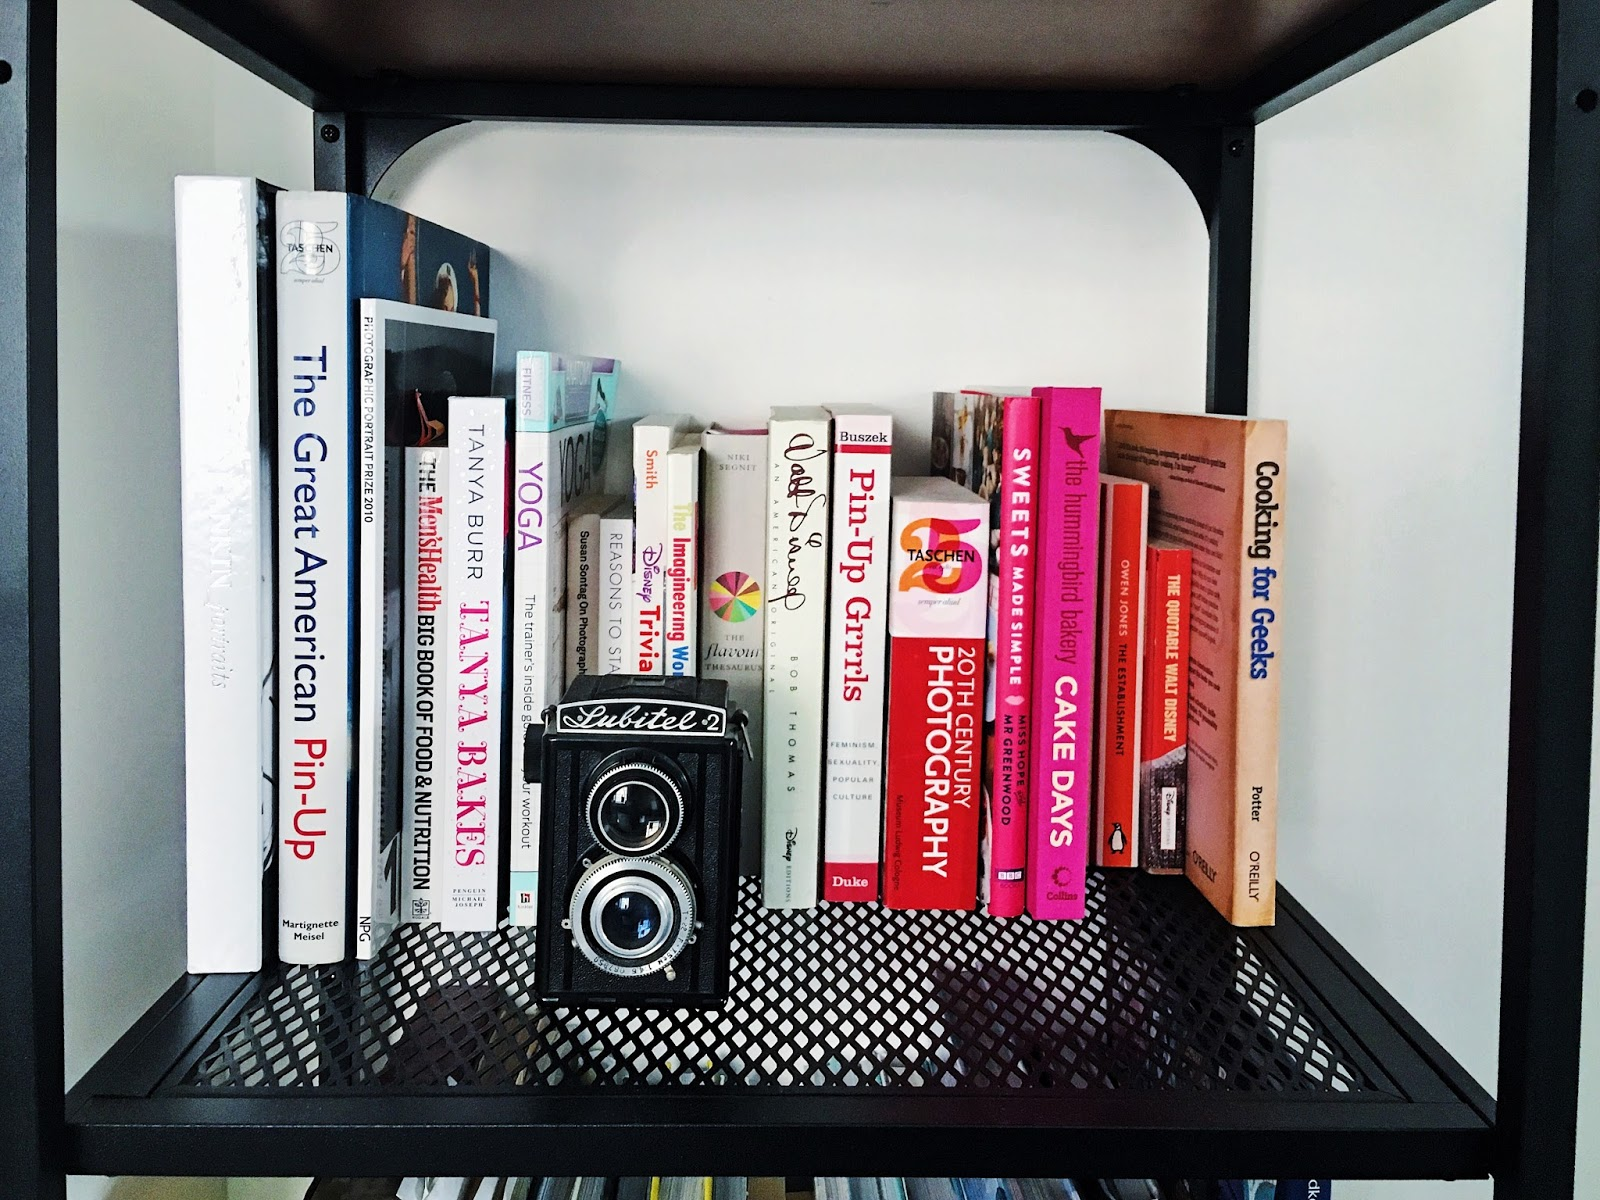 Books arranged by colour on industrial look shelves with vintage camera.